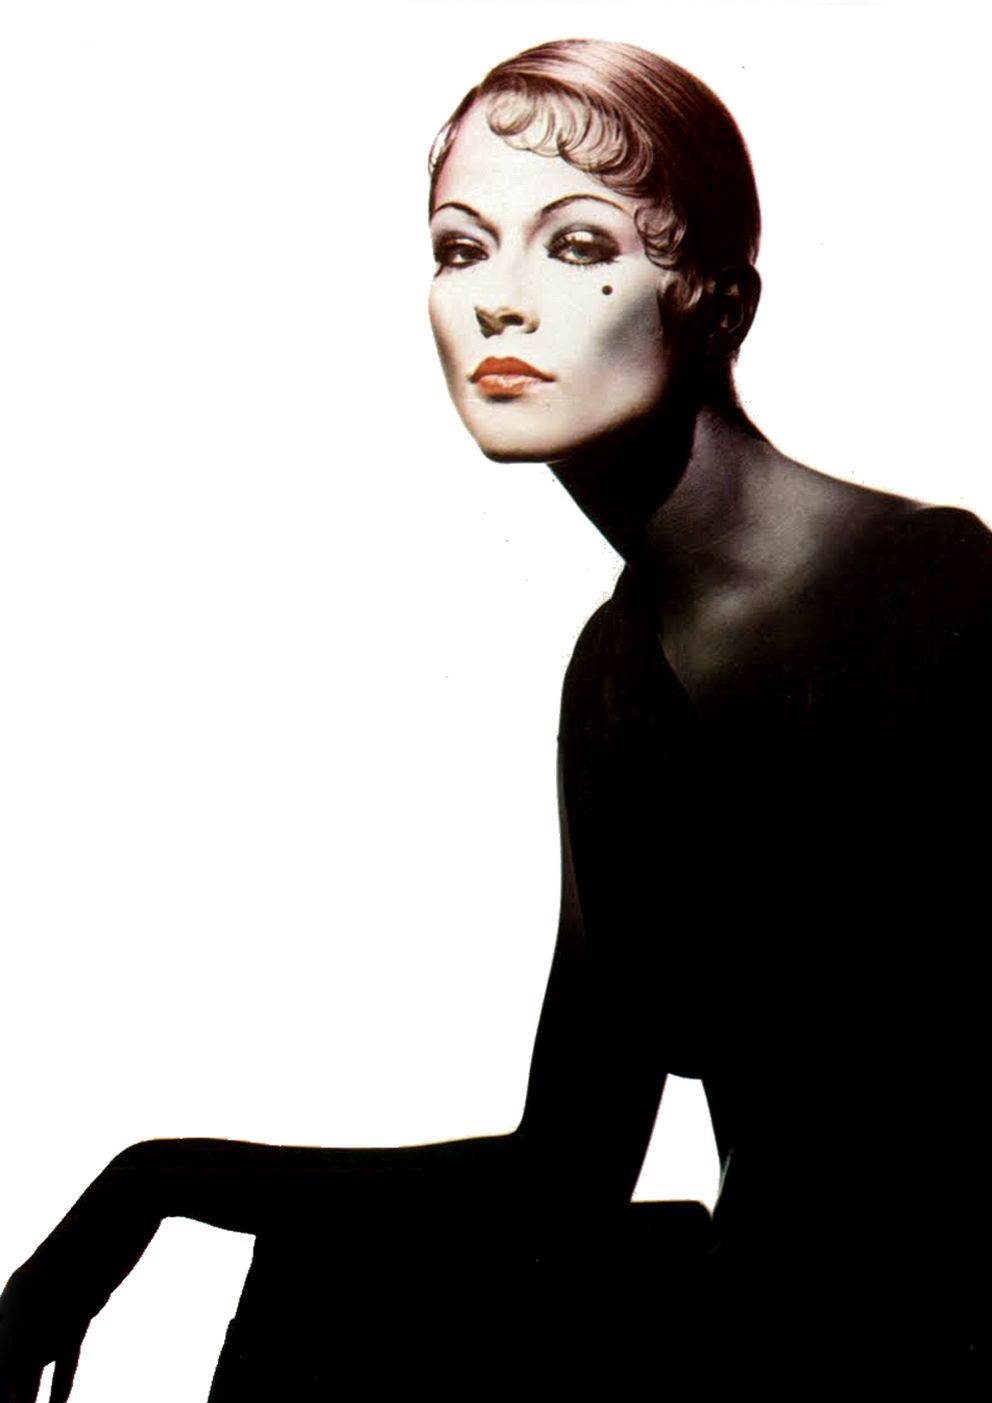 By Clive Arrowsmith for Vogue UK (September 1973).